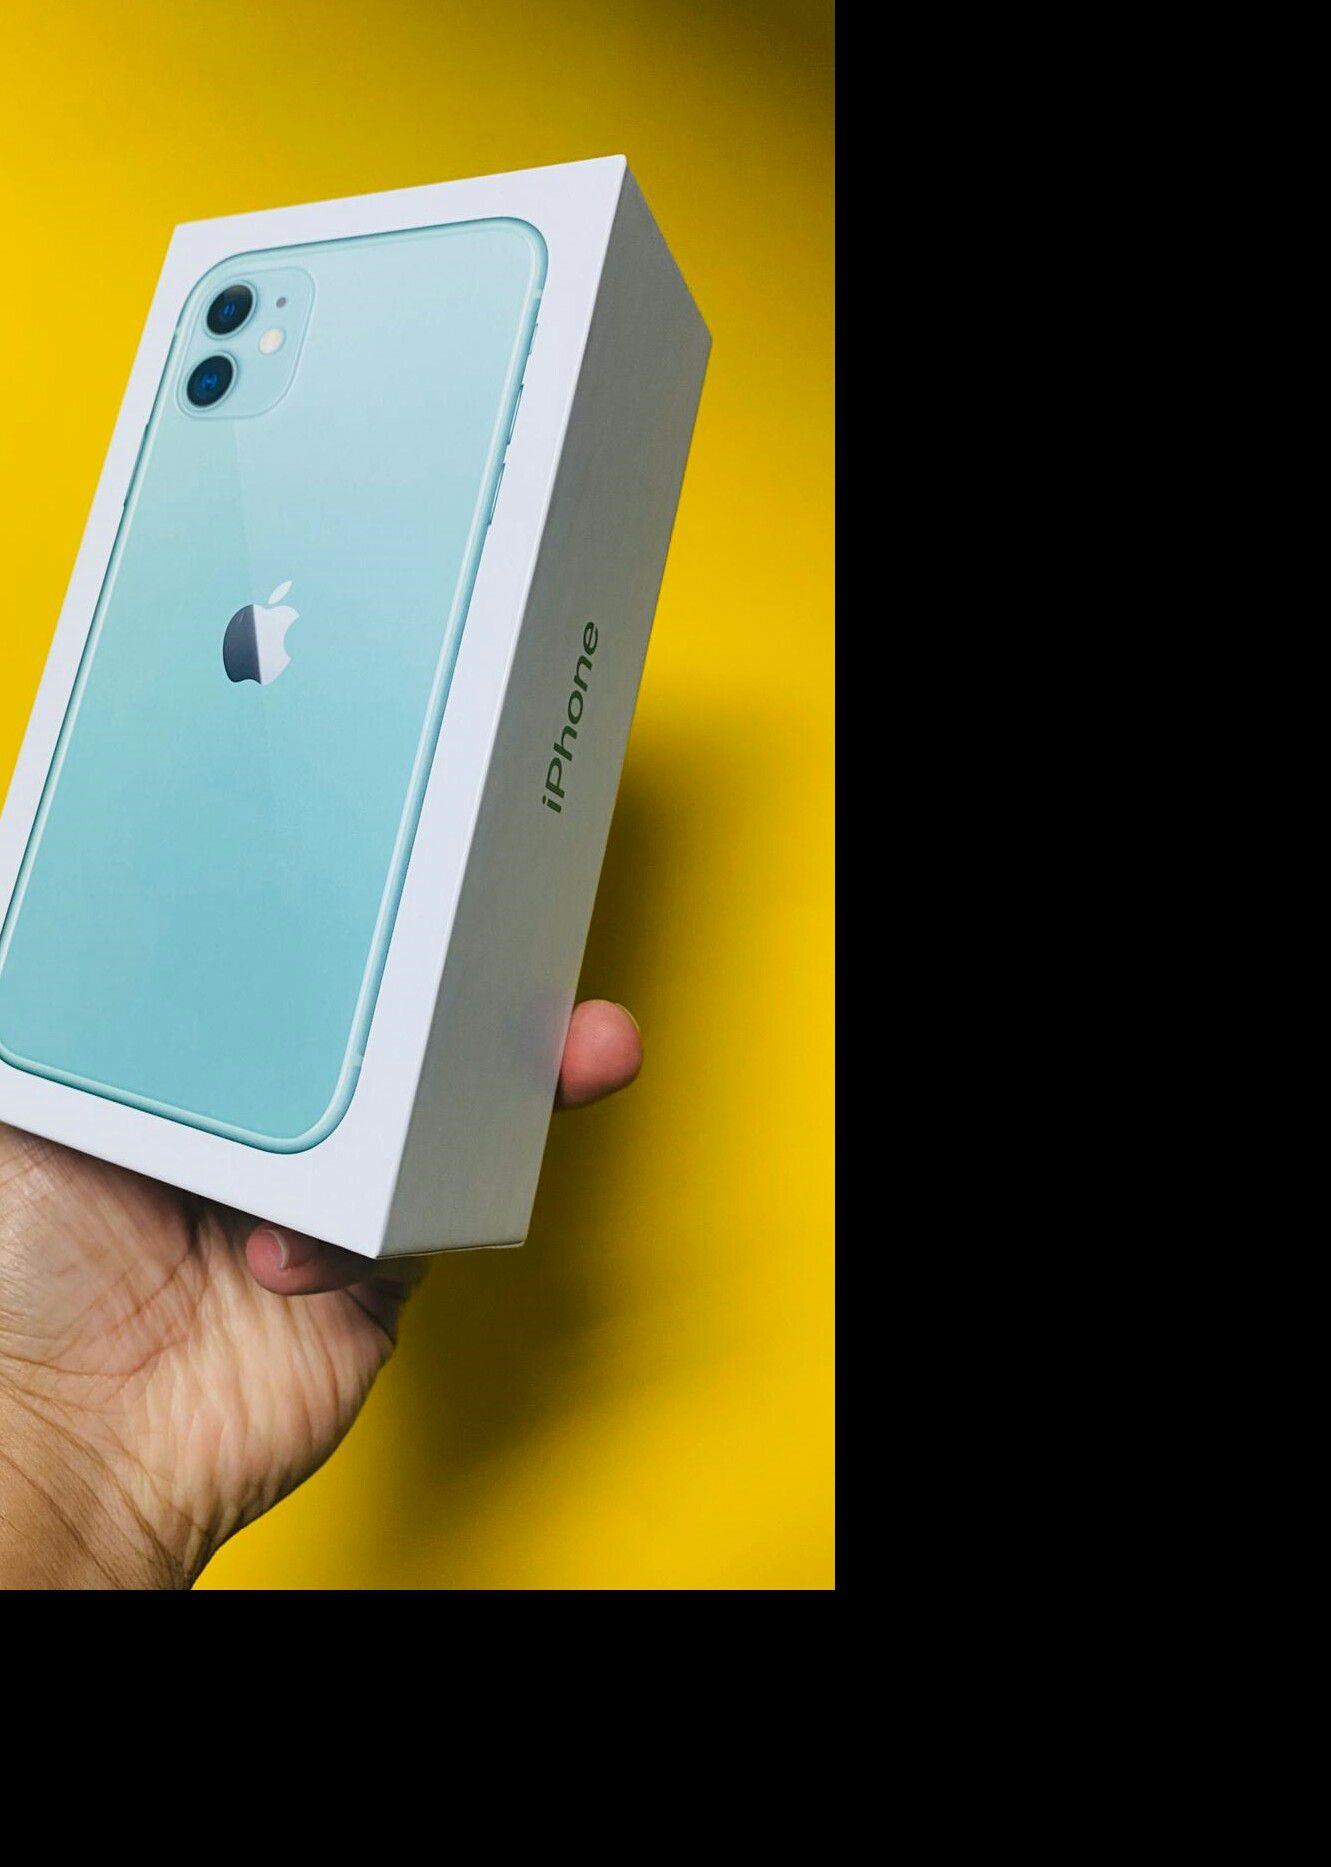 iPhone 11 for Tmobile and Metro Green ( finance for $50 down, no credit needed) $650